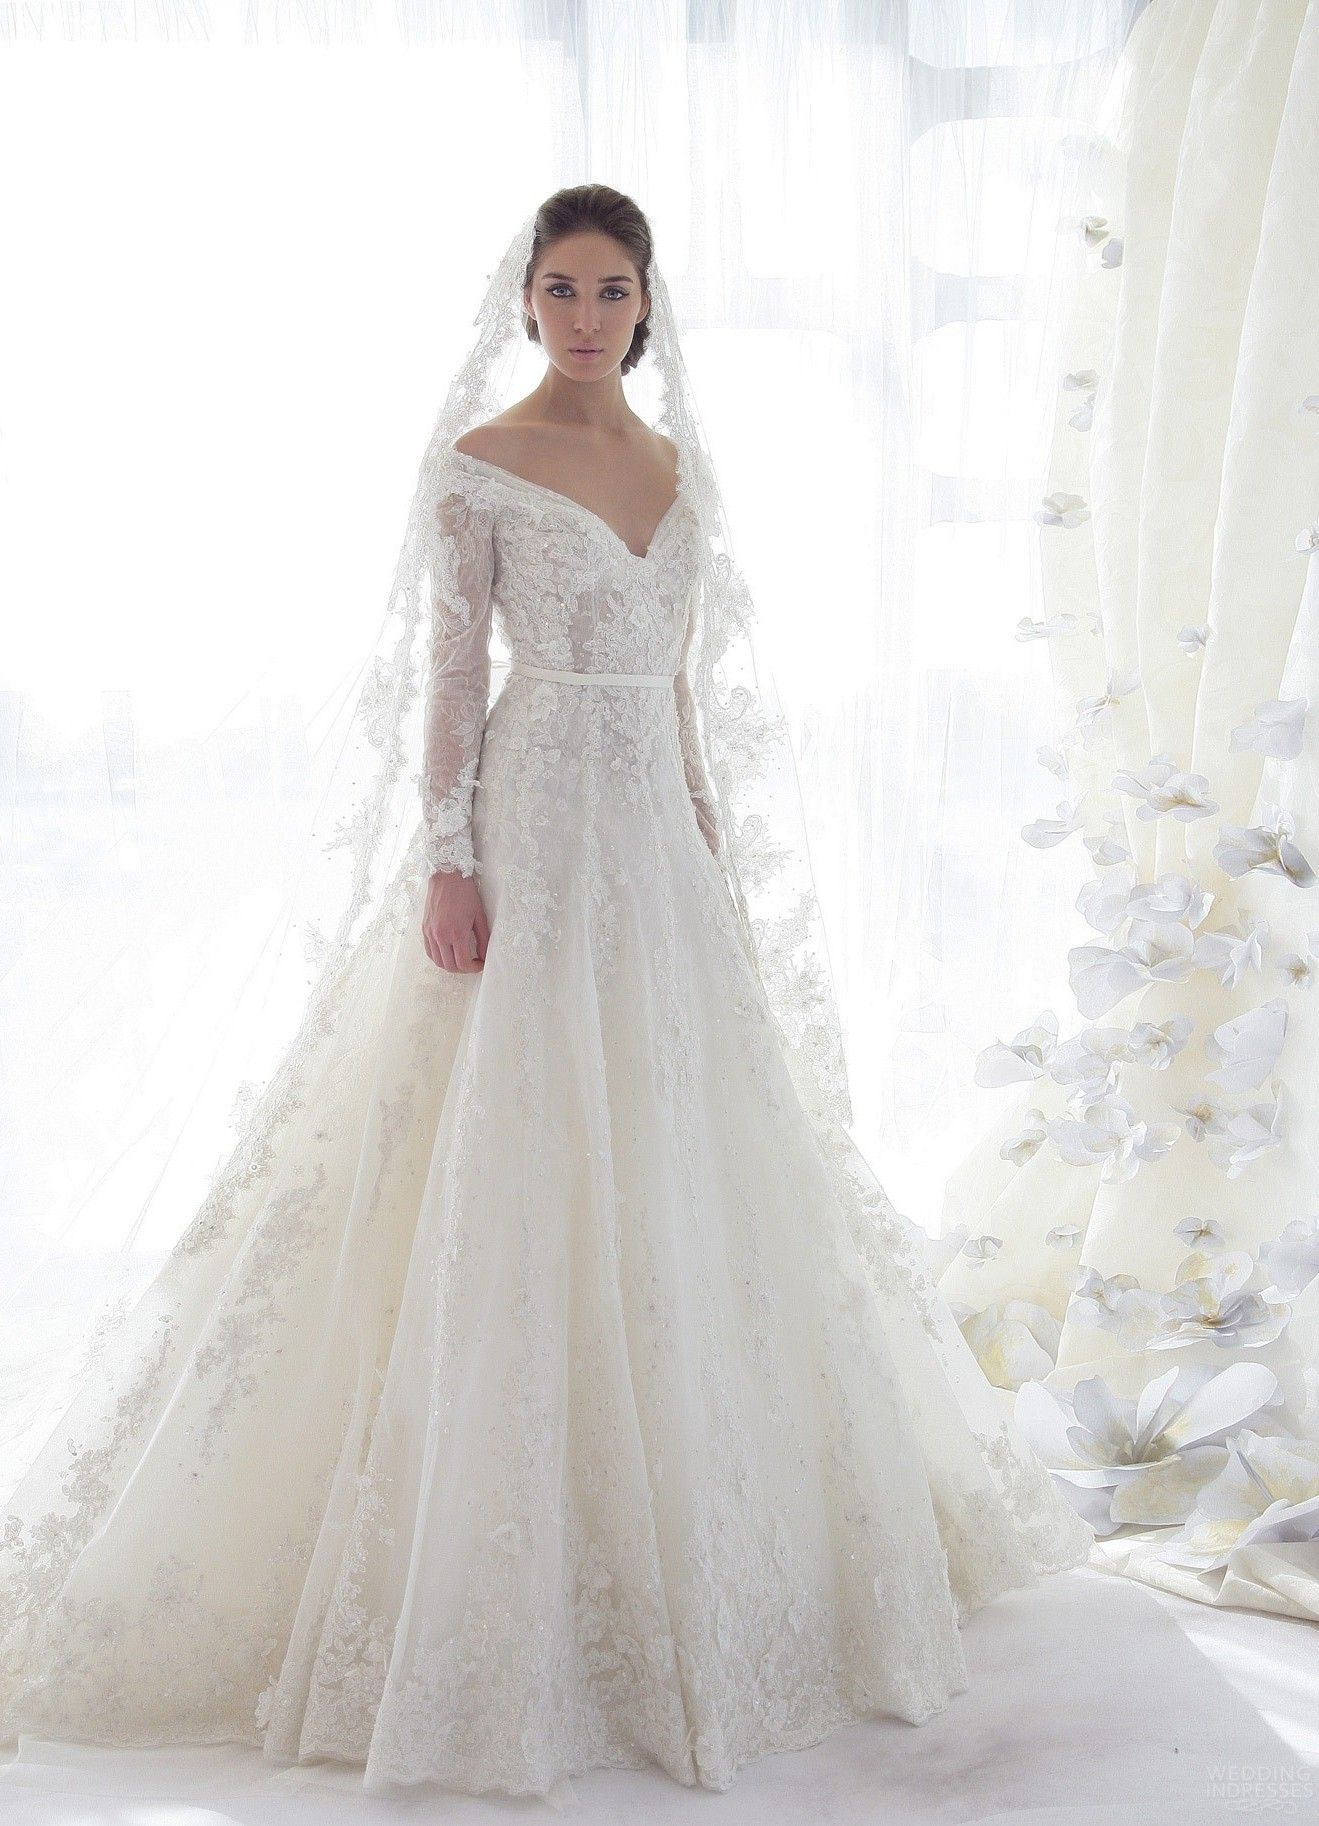 25 marvelous lace wedding dresses with sleeves ideas lace wedding lace wedding dresses with sleeves 15 junglespirit Image collections